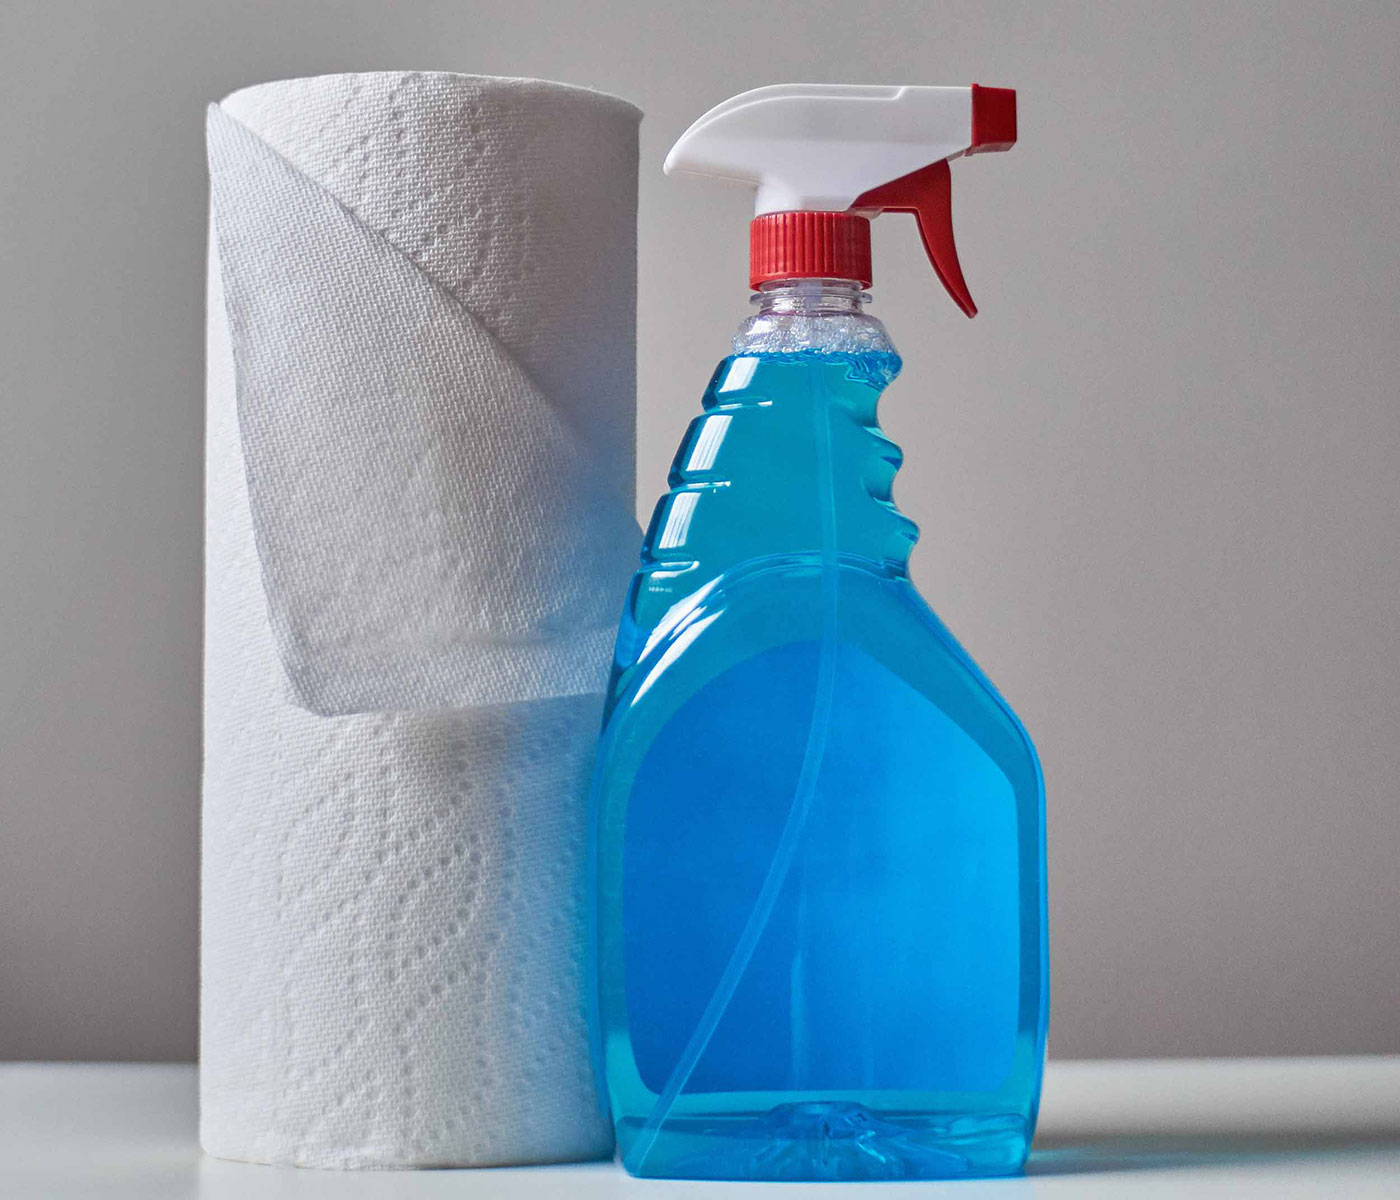 Purchasing-Cleaning and Janitorial Products: a roll of paper towels is placed next to a spray bottle filled with a blue cleaning product.